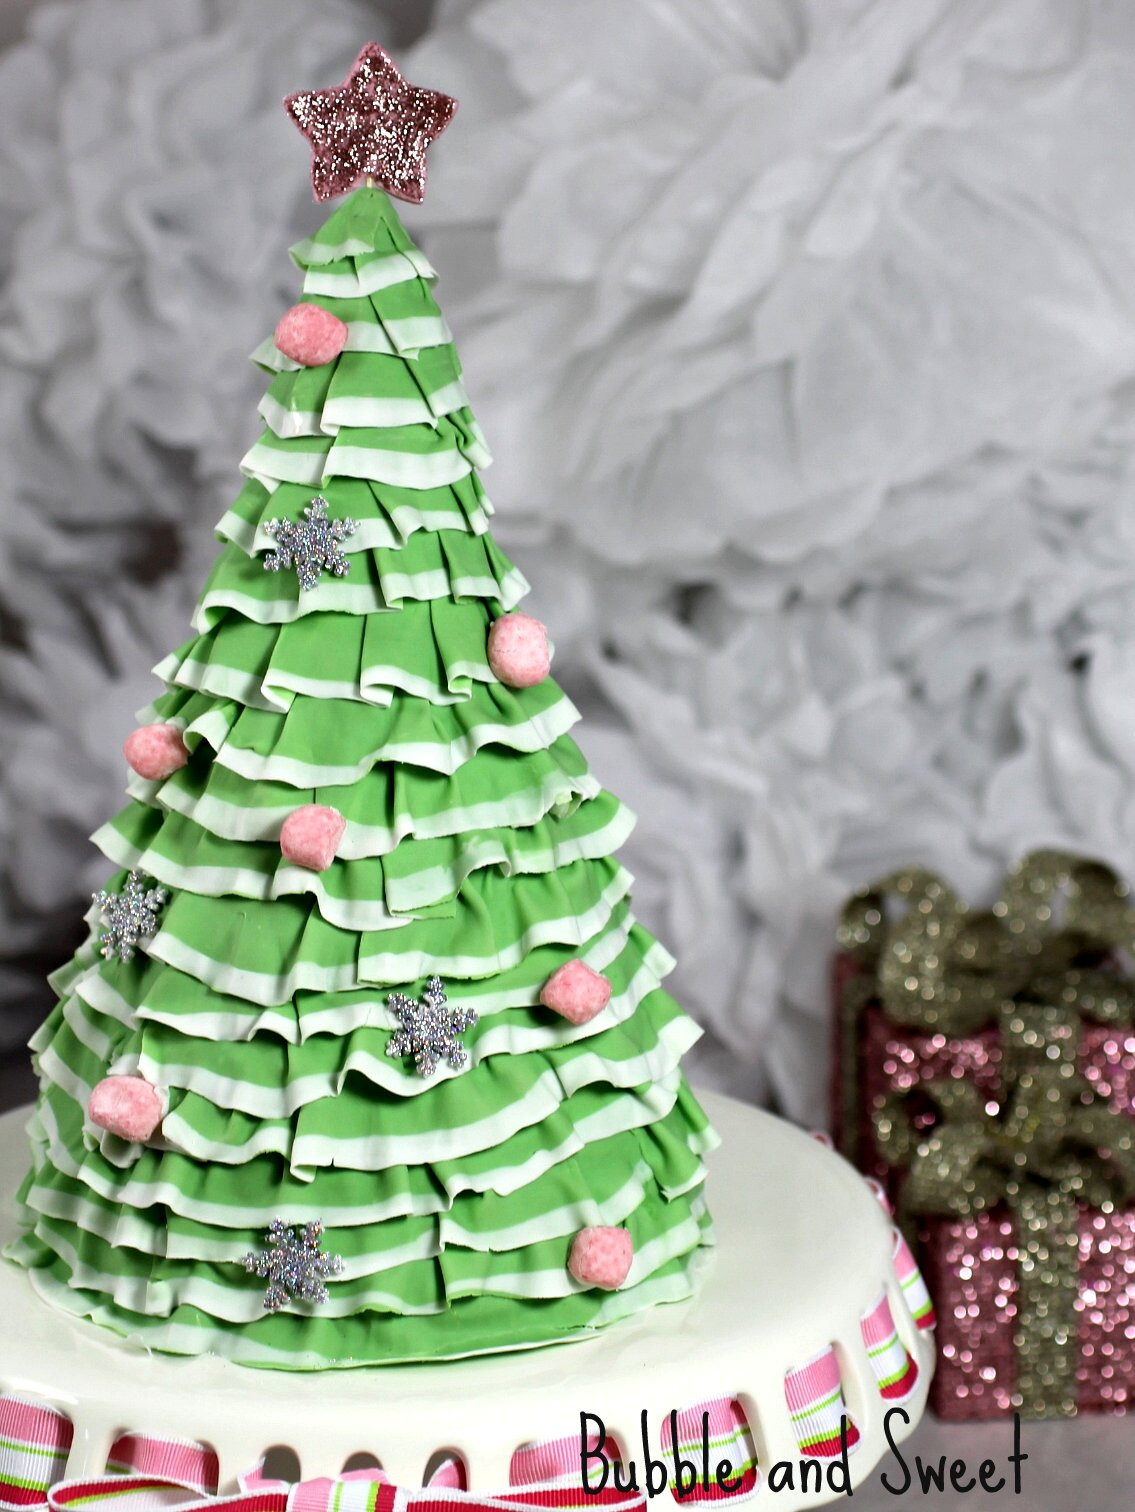 Christmas Tree Cakes  Bubble and Sweet Pretty Layered Ruffle Christmas Tree